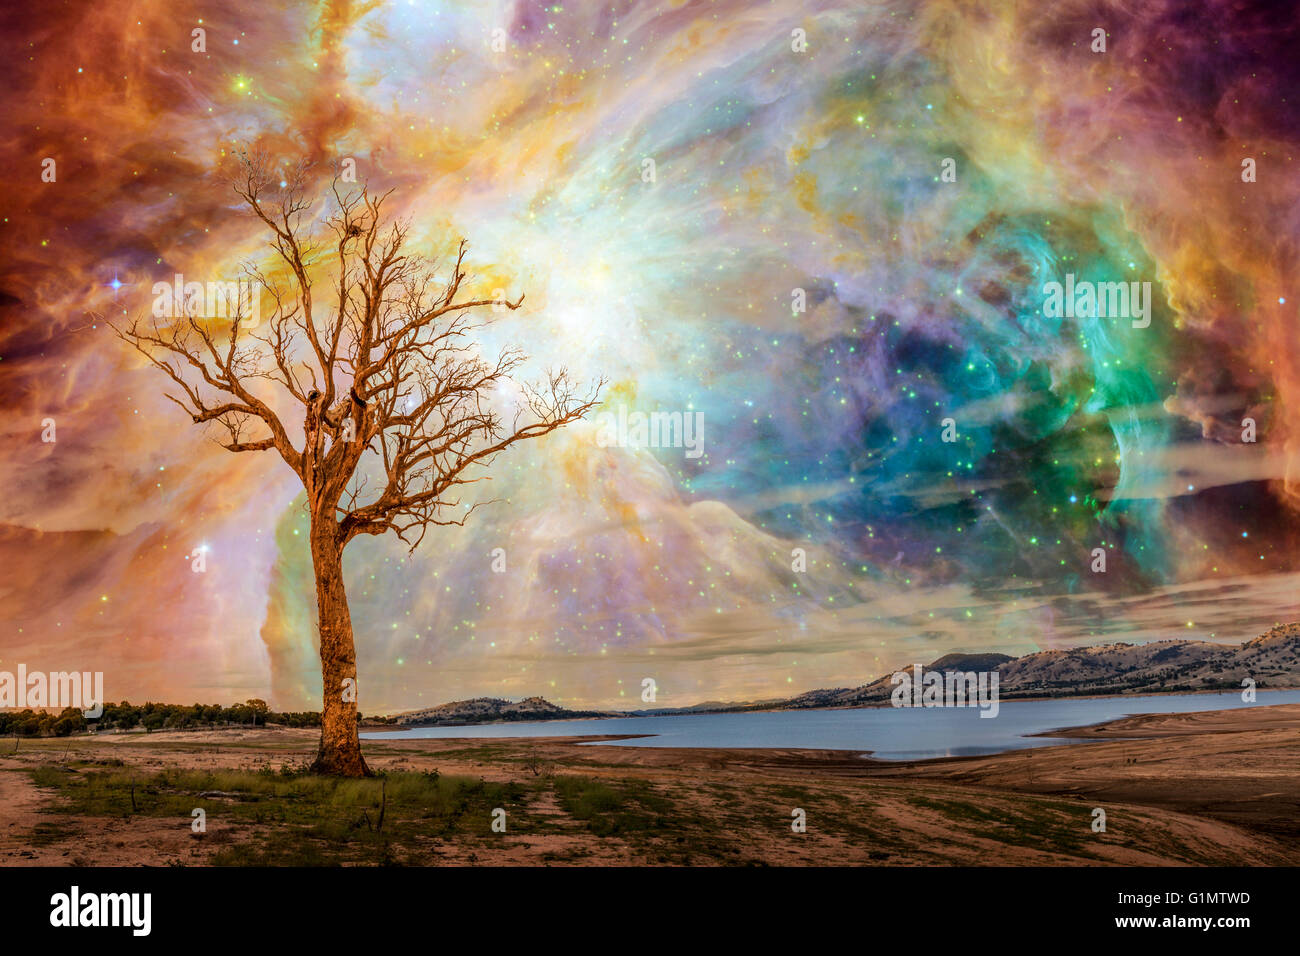 Alien planet fantasy landscape. Tree standing near lake with bright galaxy and stars shining in the sky. Elements - Stock Image